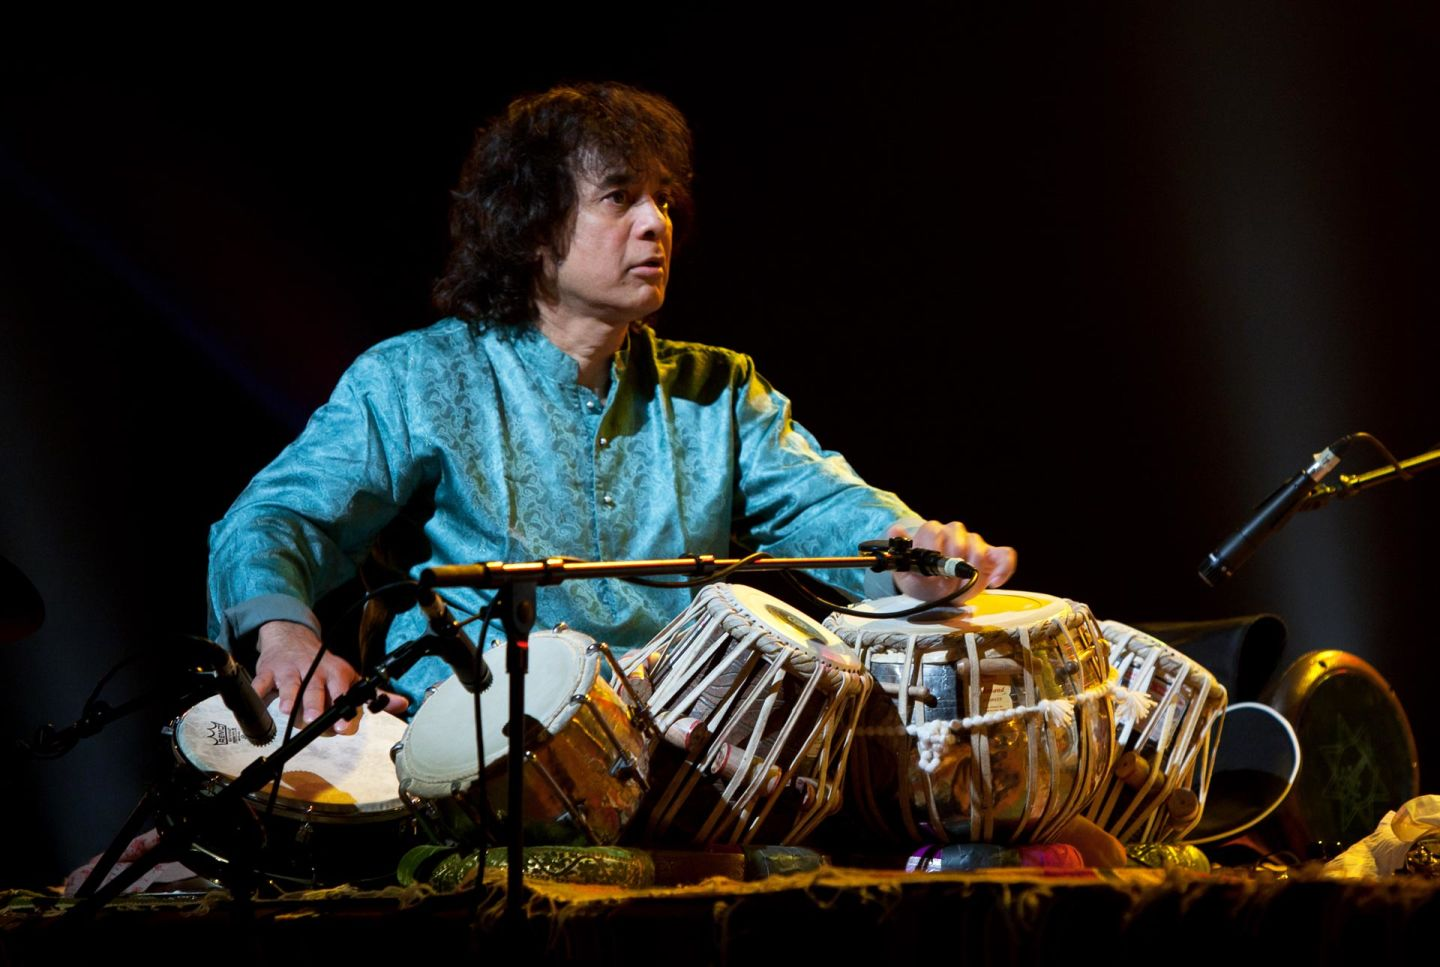 Zakir Hussain's 'Distant Kin' Brings Together Indian, Celtic Traditions